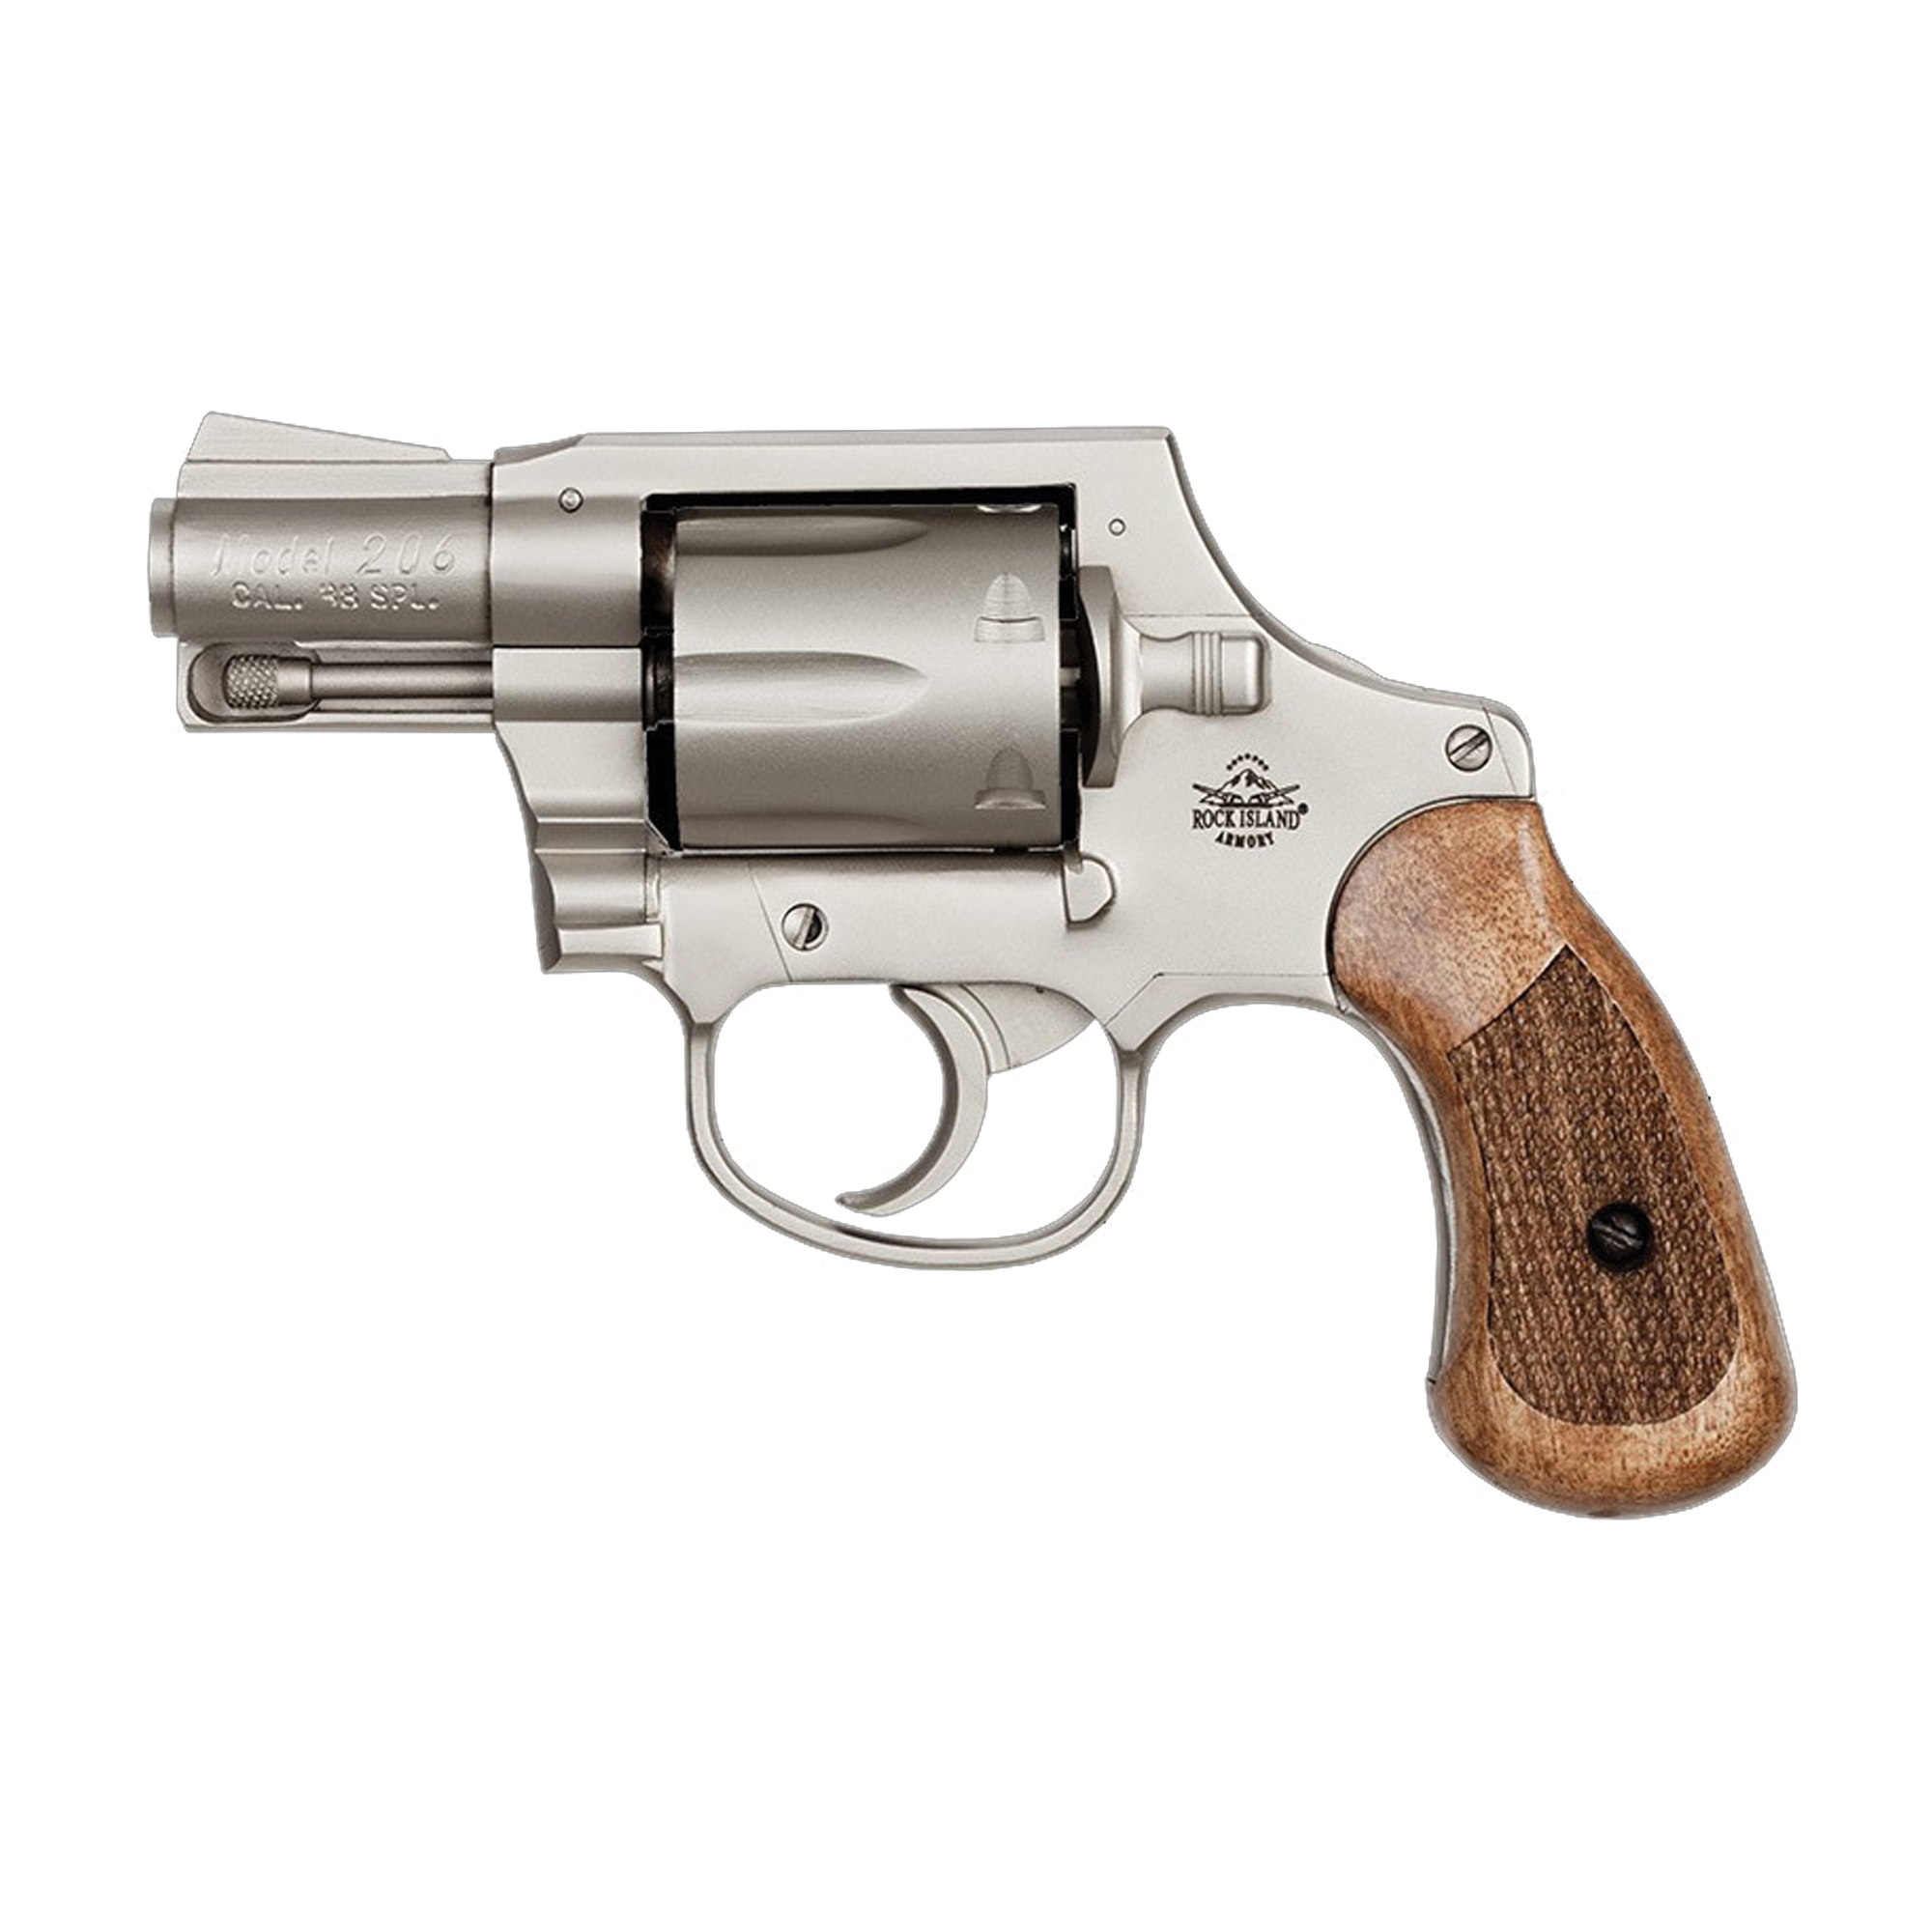 Reliability and durability come standard in the Rock Island revolver series. Each is built from solid steel with a fixed front sight and smooth channel frame-cut rear sight.